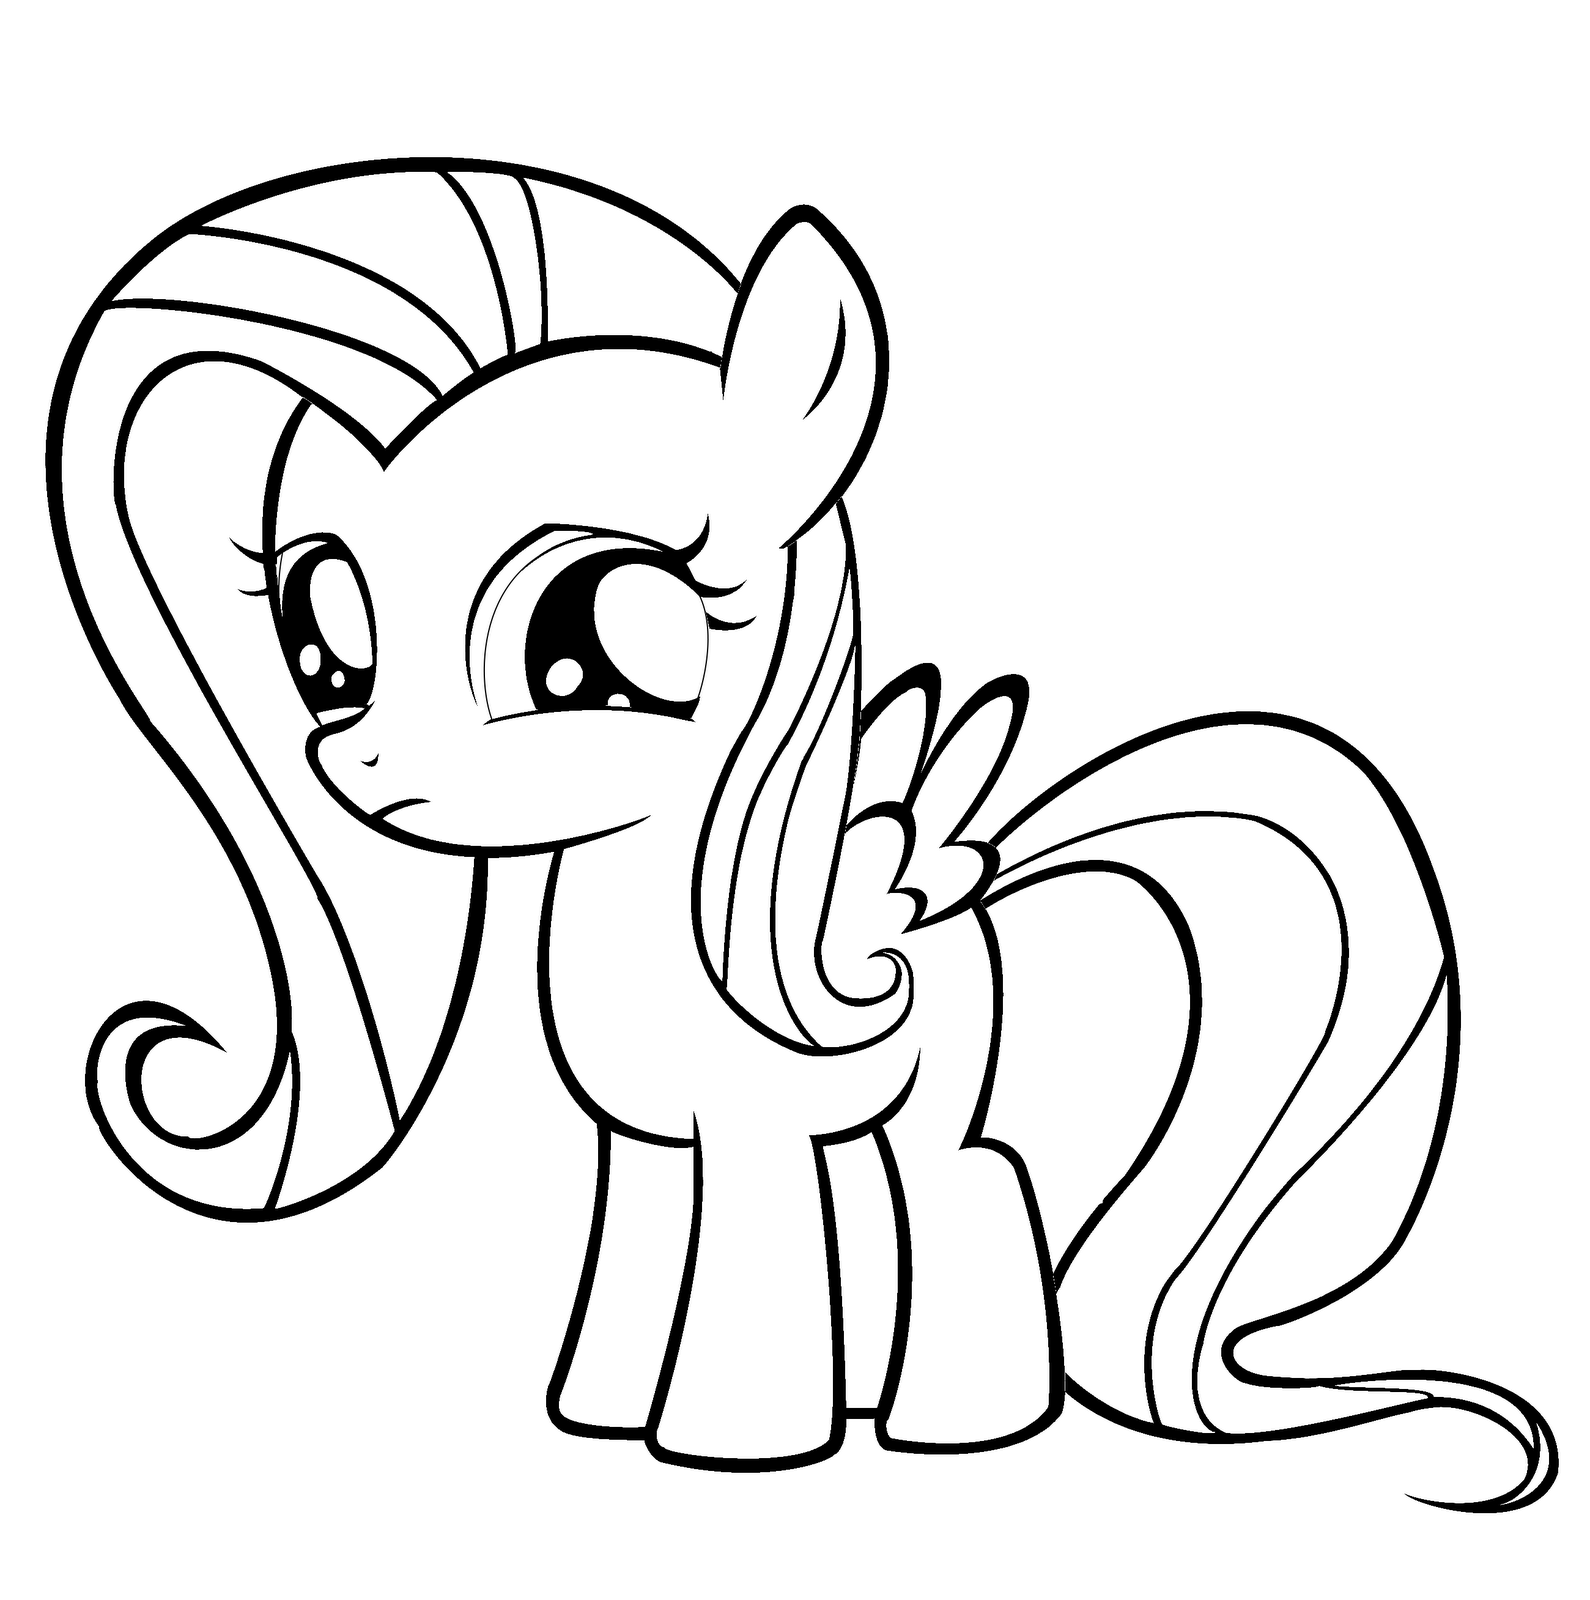 My little pony friendship is magic coloring pages free